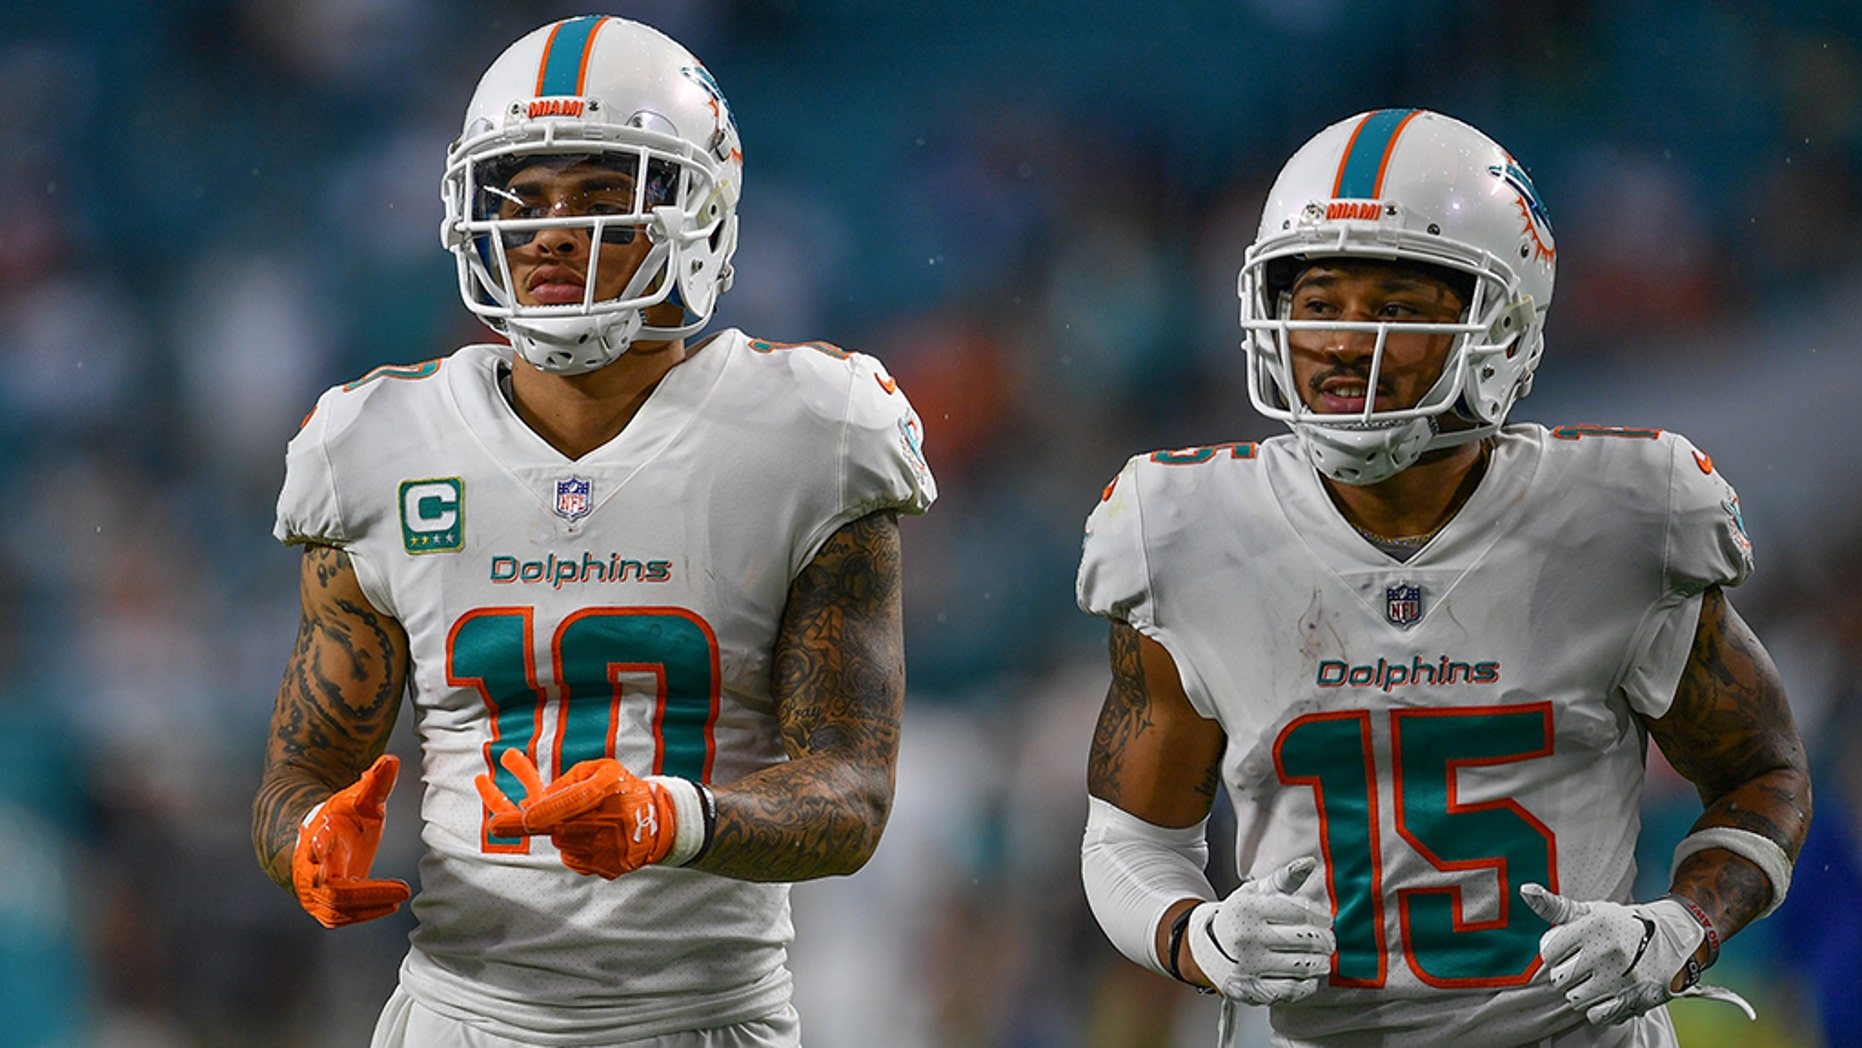 Miami Dolphins players Kenny Stills, left, and Albert Wilson took a knee during the national anthem before Sunday's game against the New York Jets, continuing the protest Colin Kaepernick started.